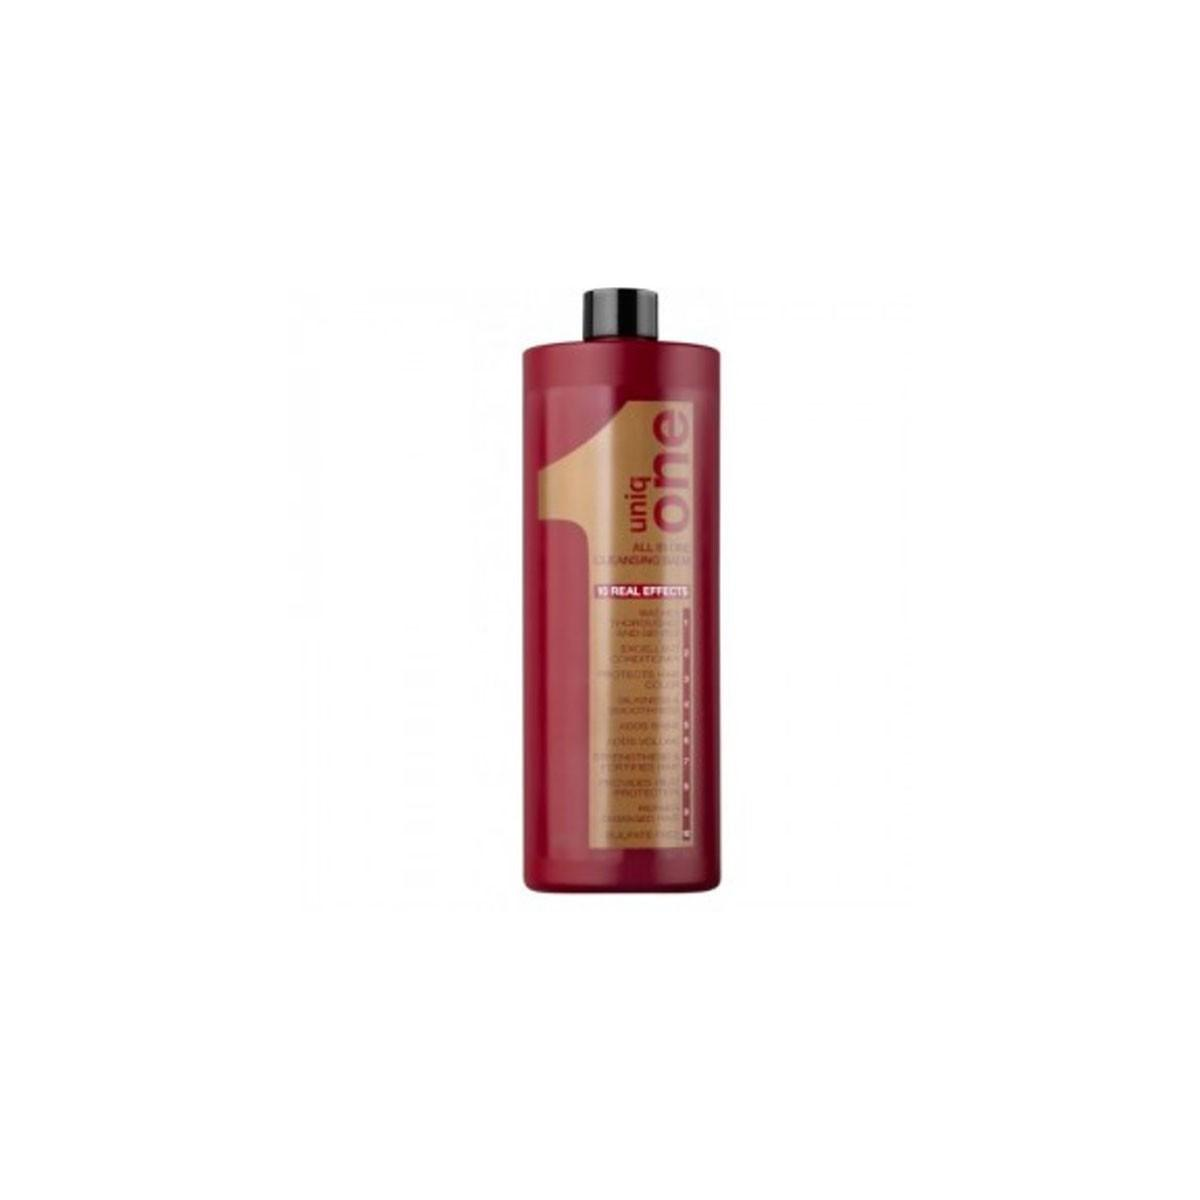 Revlon Uniq One Balm Cleaner 1100 ml